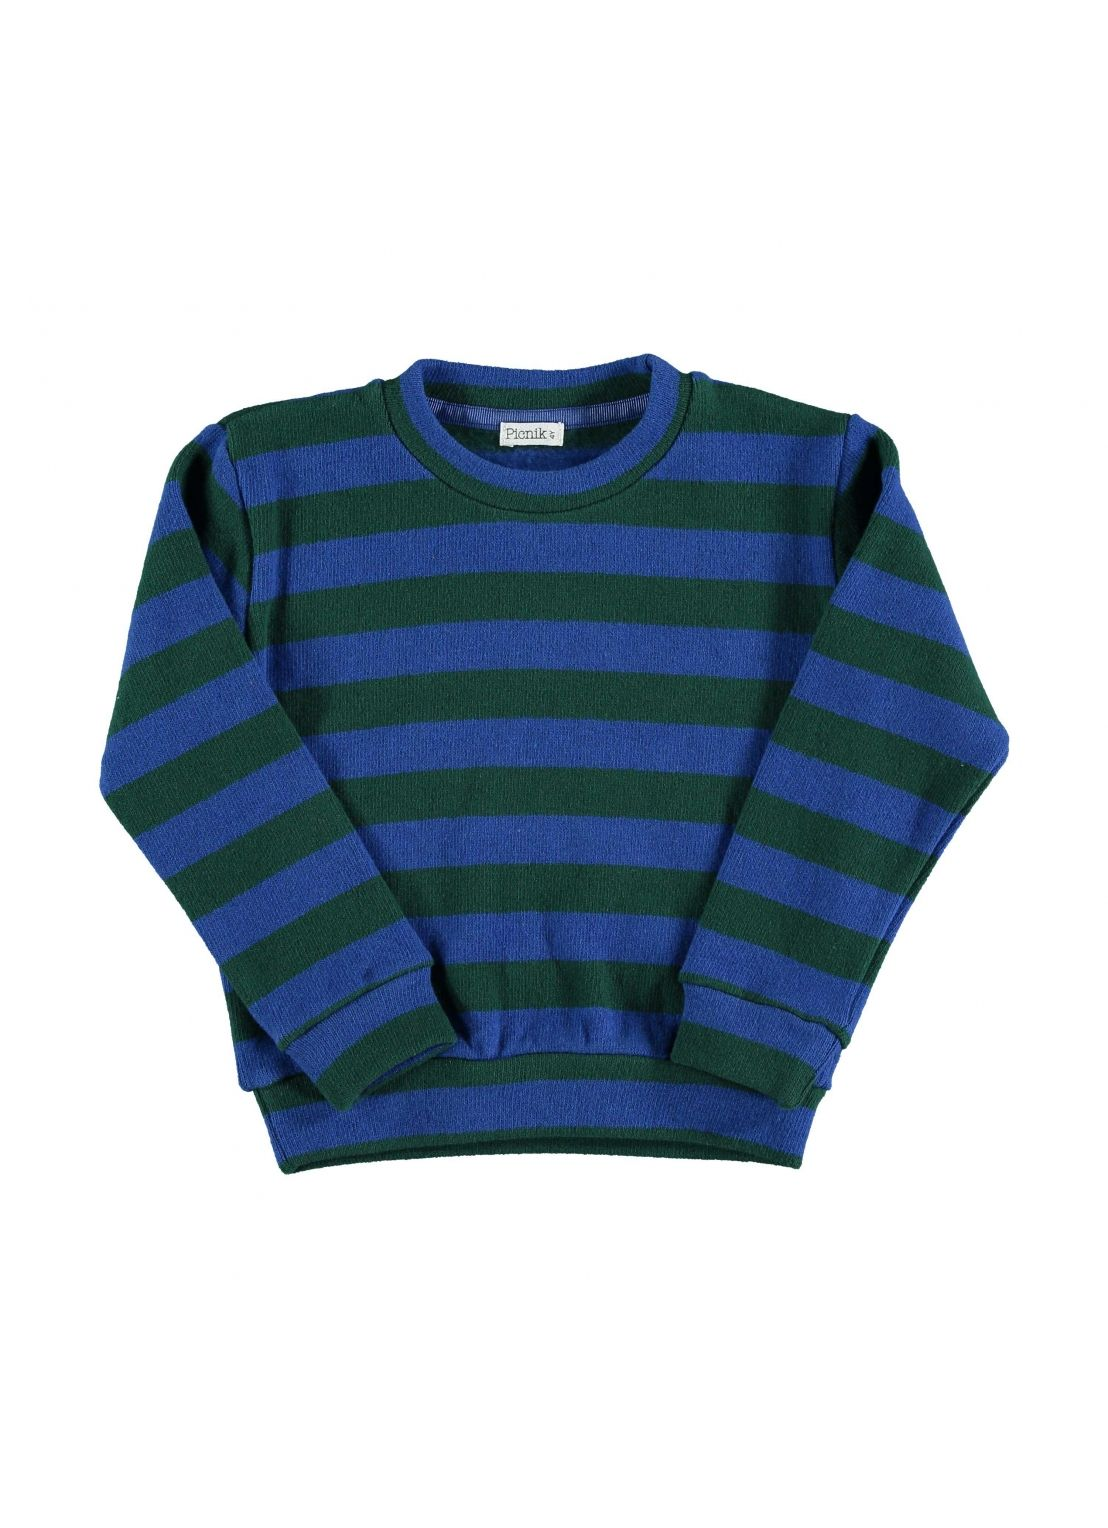 Baby SWEATER Unisex- 70% CO 20% PC 3% VI 2%PA 2% EA - knitted